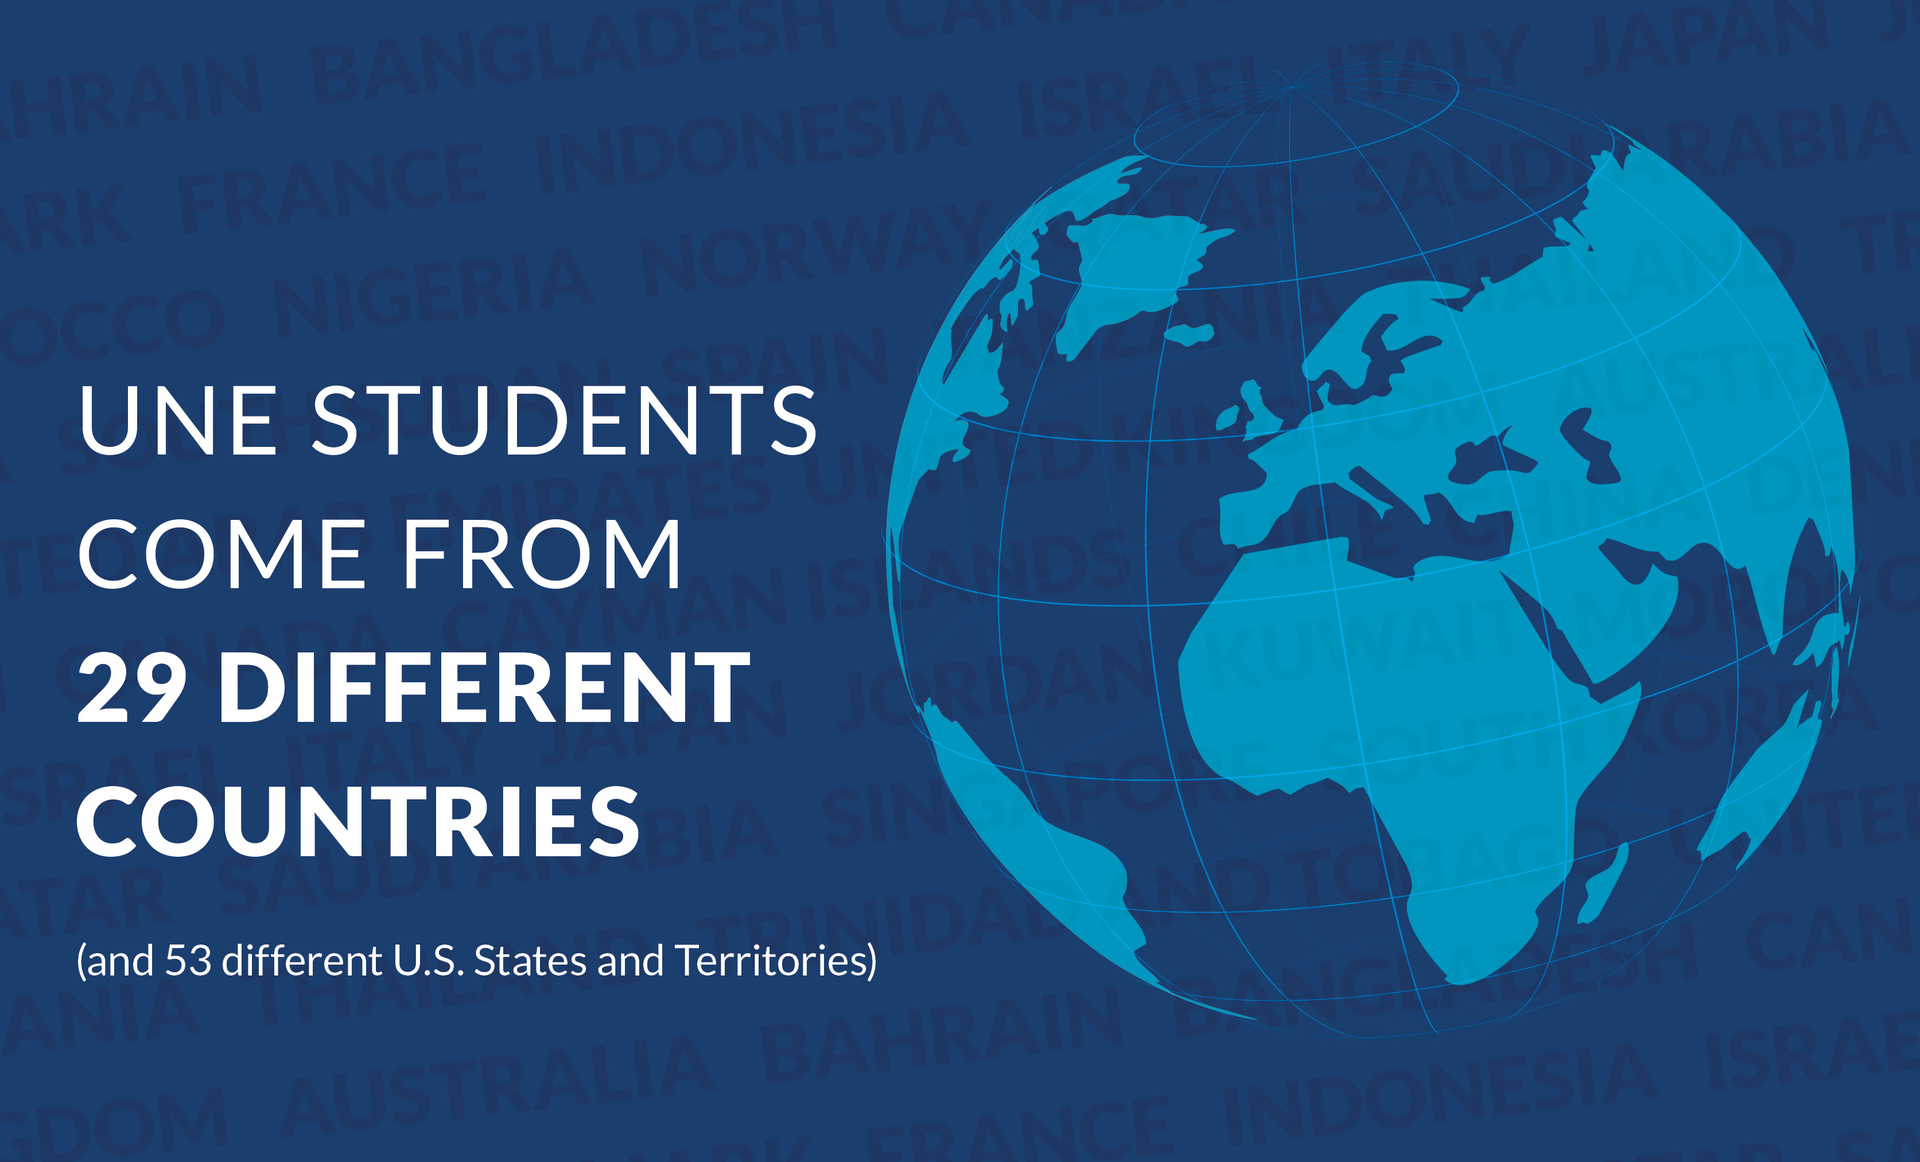 UNE students come from 29 countries